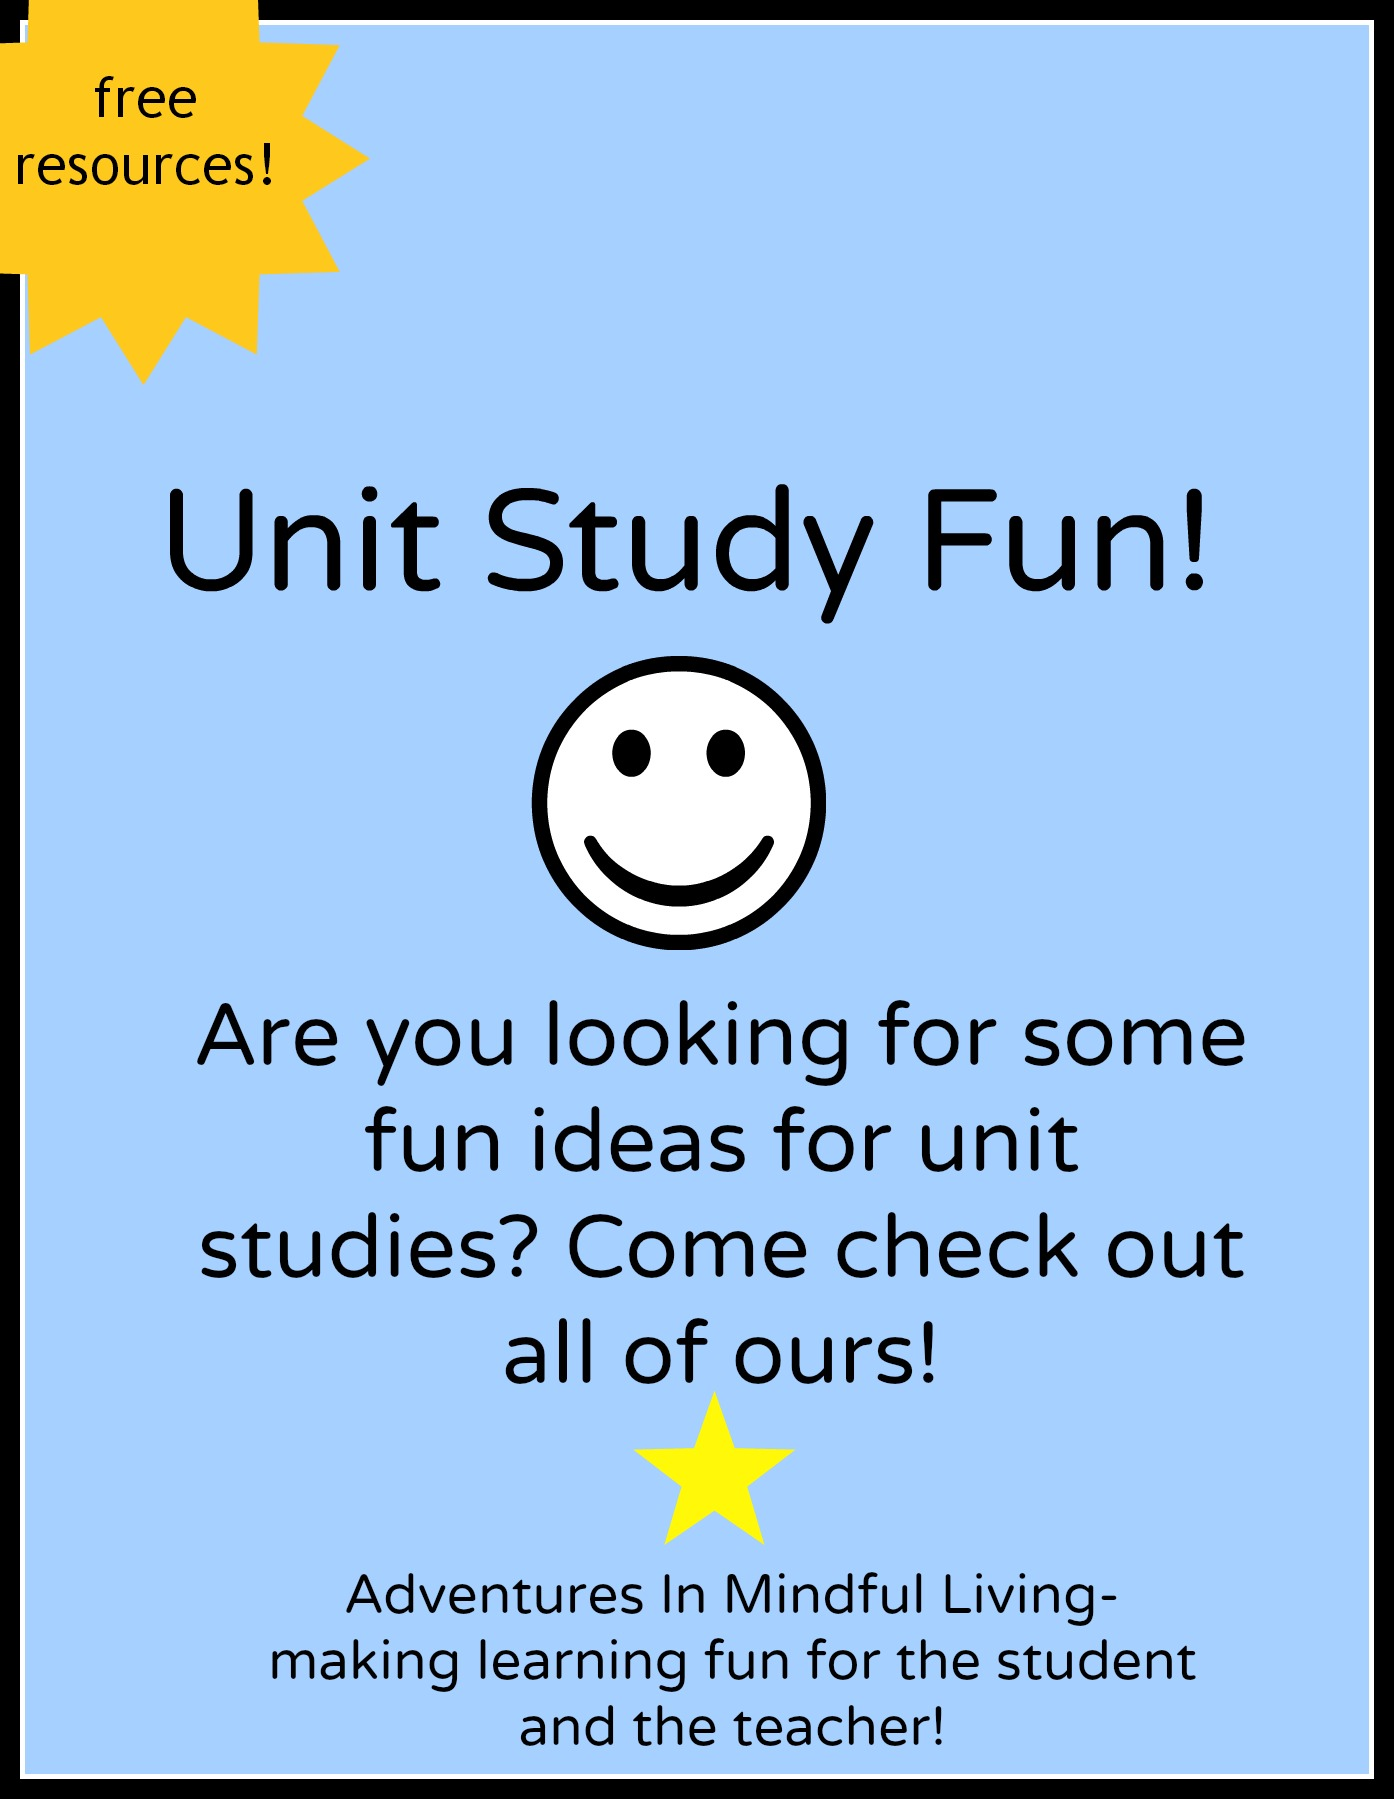 Looking for some great and fun ideas for unit studies that will make learning fun for  the student and the teacher? Come check our list and find some great free resources!